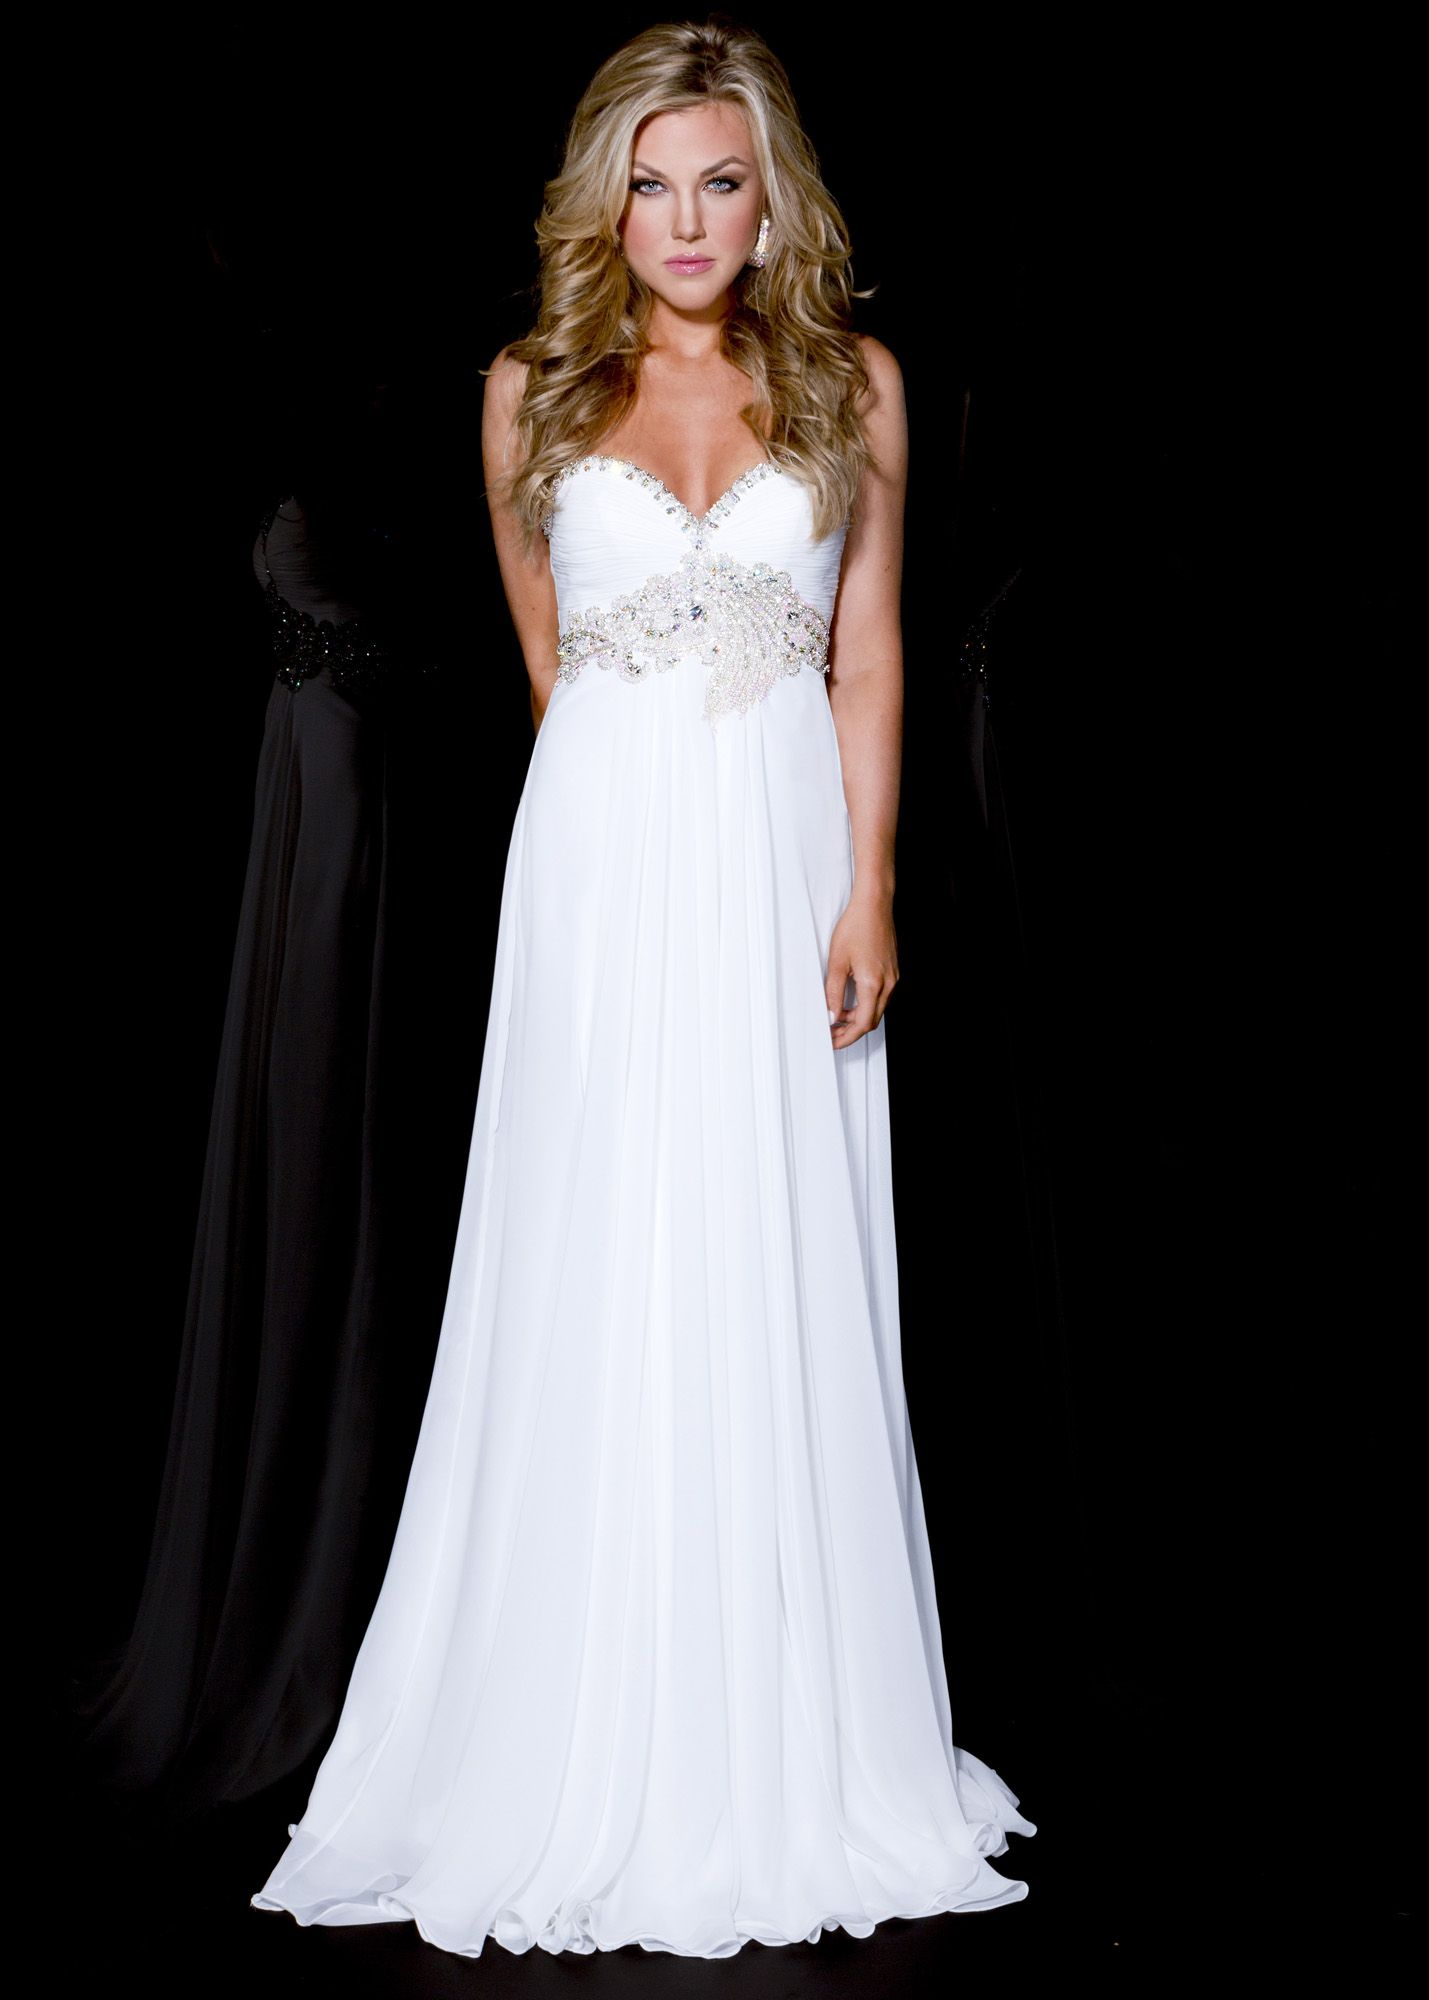 white-evening-gowns-1-2 | White Evening Gowns | Pinterest | White ...